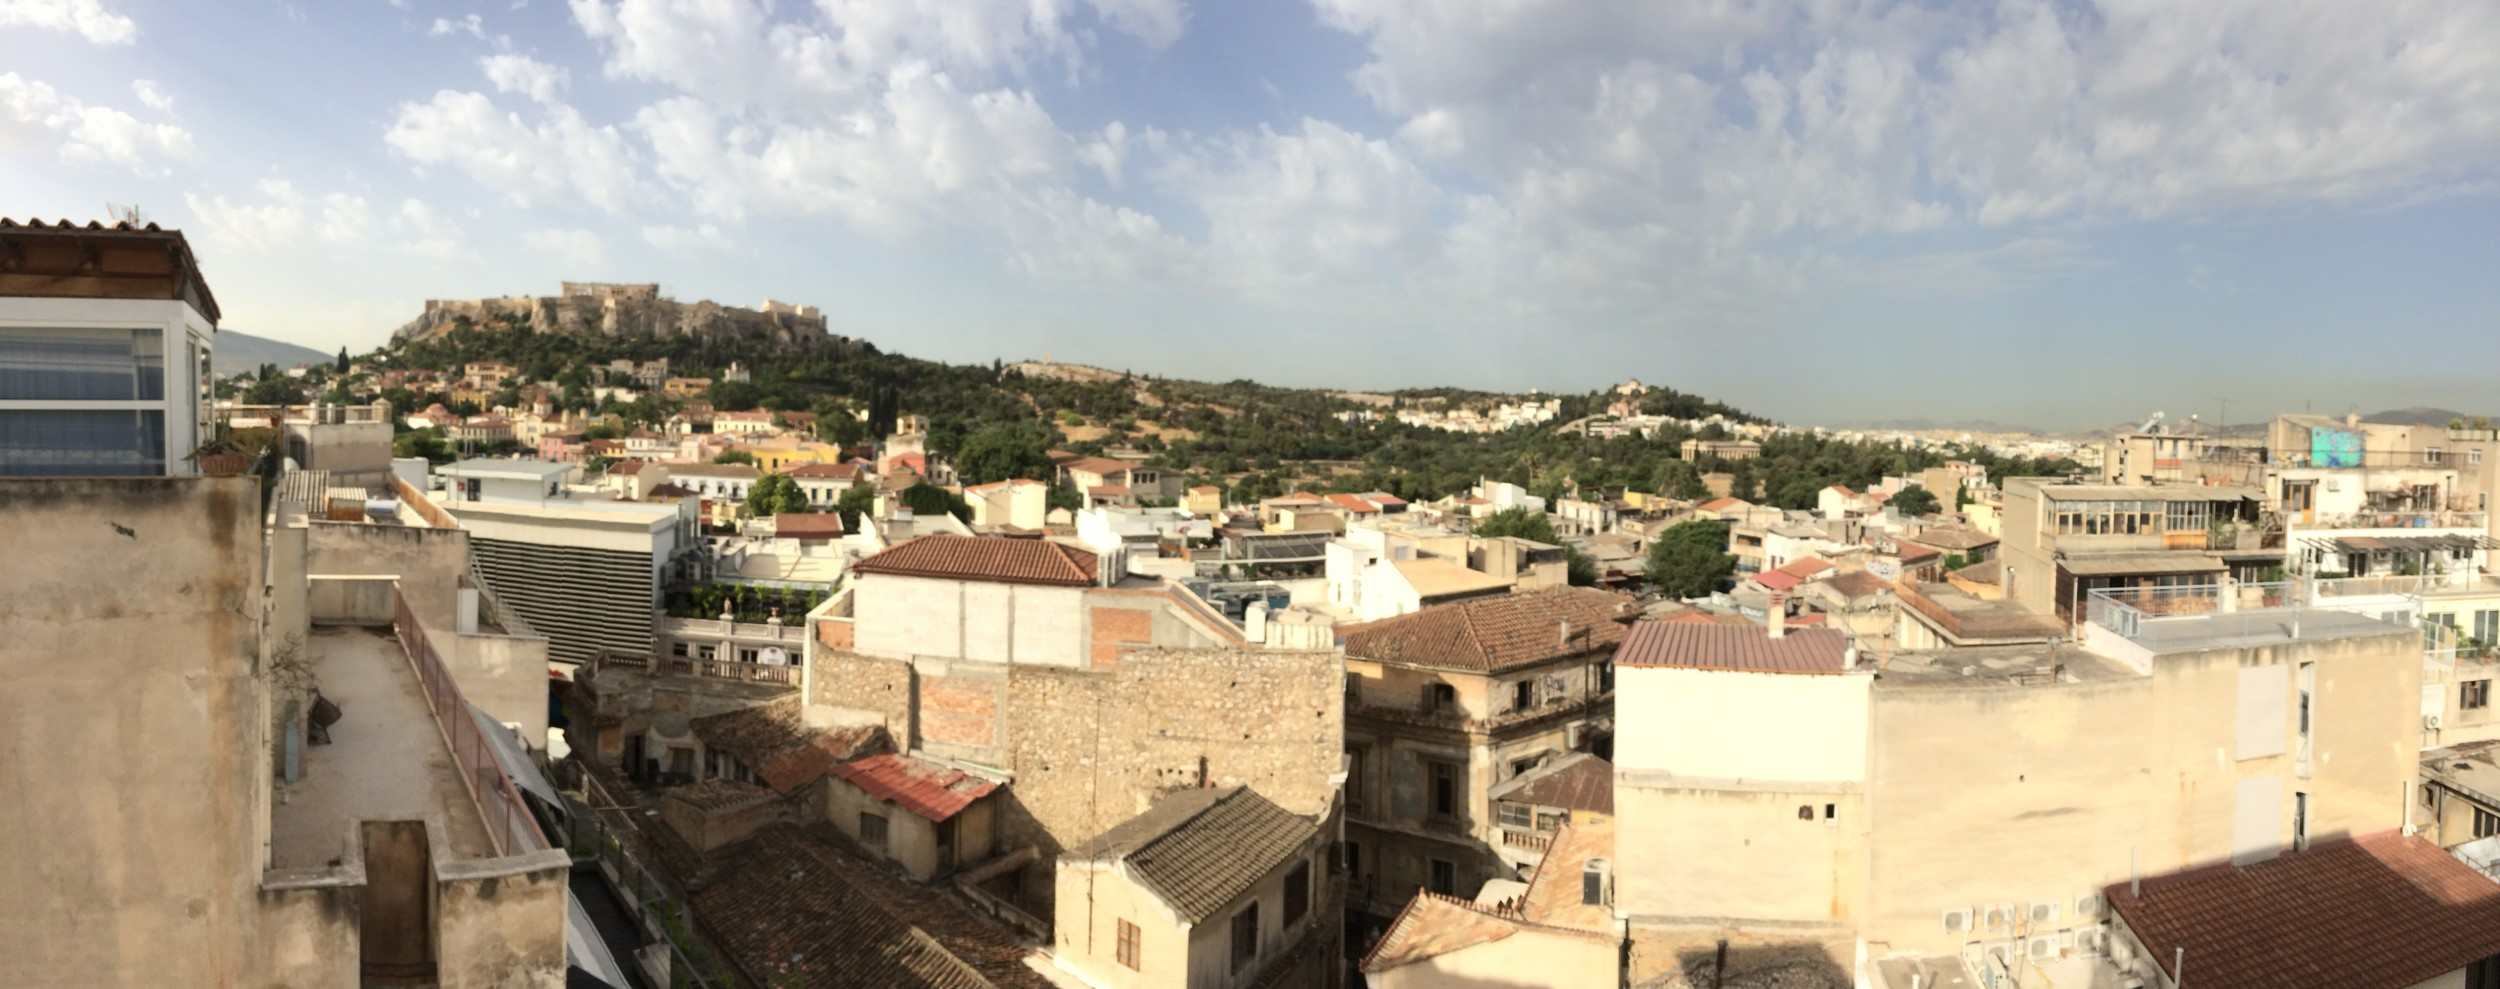 My view of the Acropolis as I write this from the rooftop of my hostel. I mean... it's nice enough.